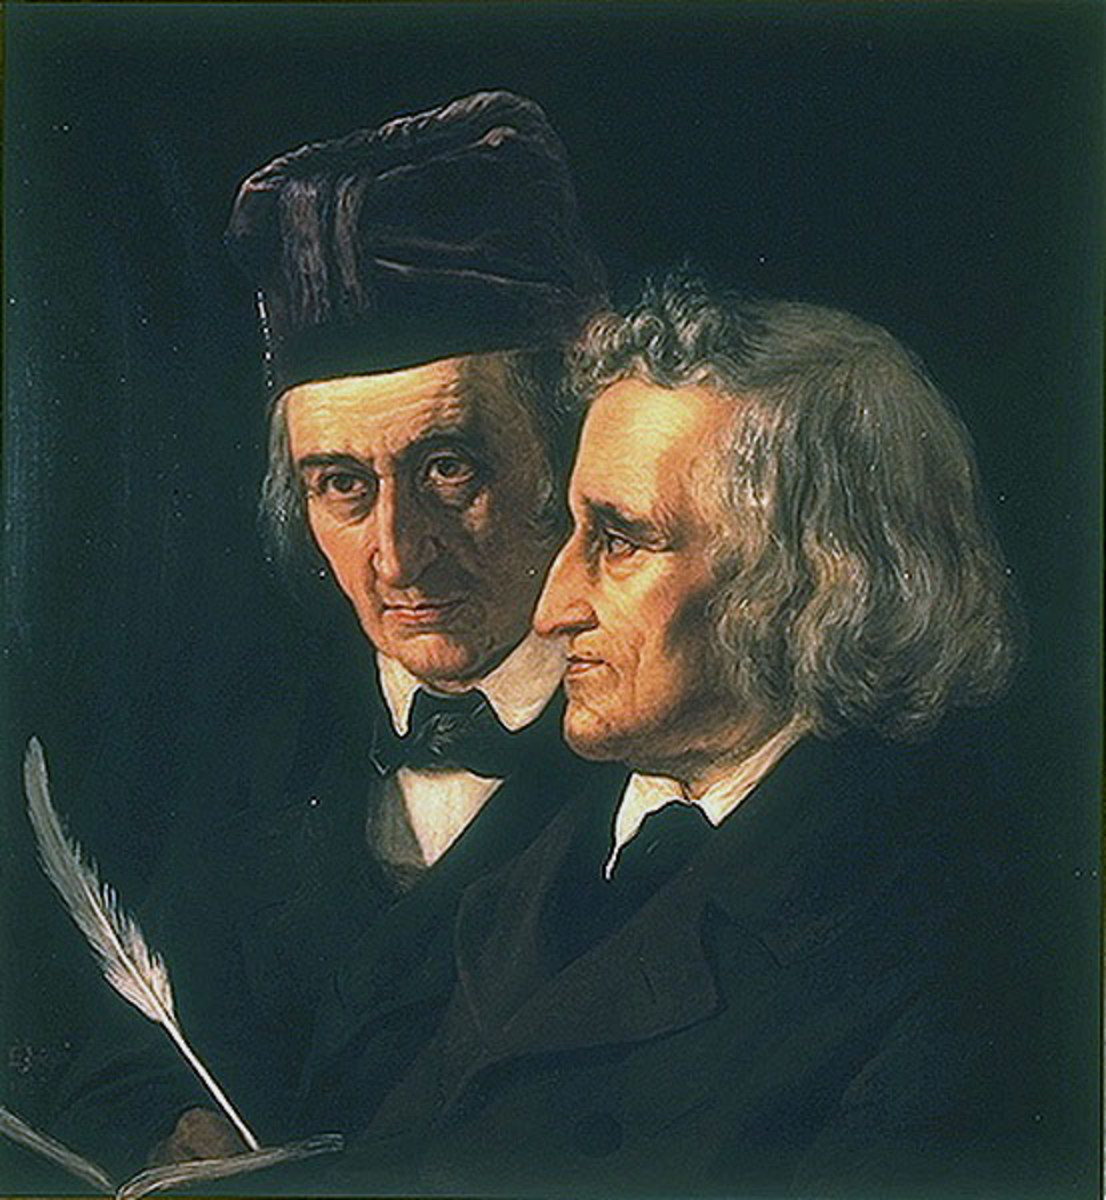 William and Jacob Grimm (1785-1863)